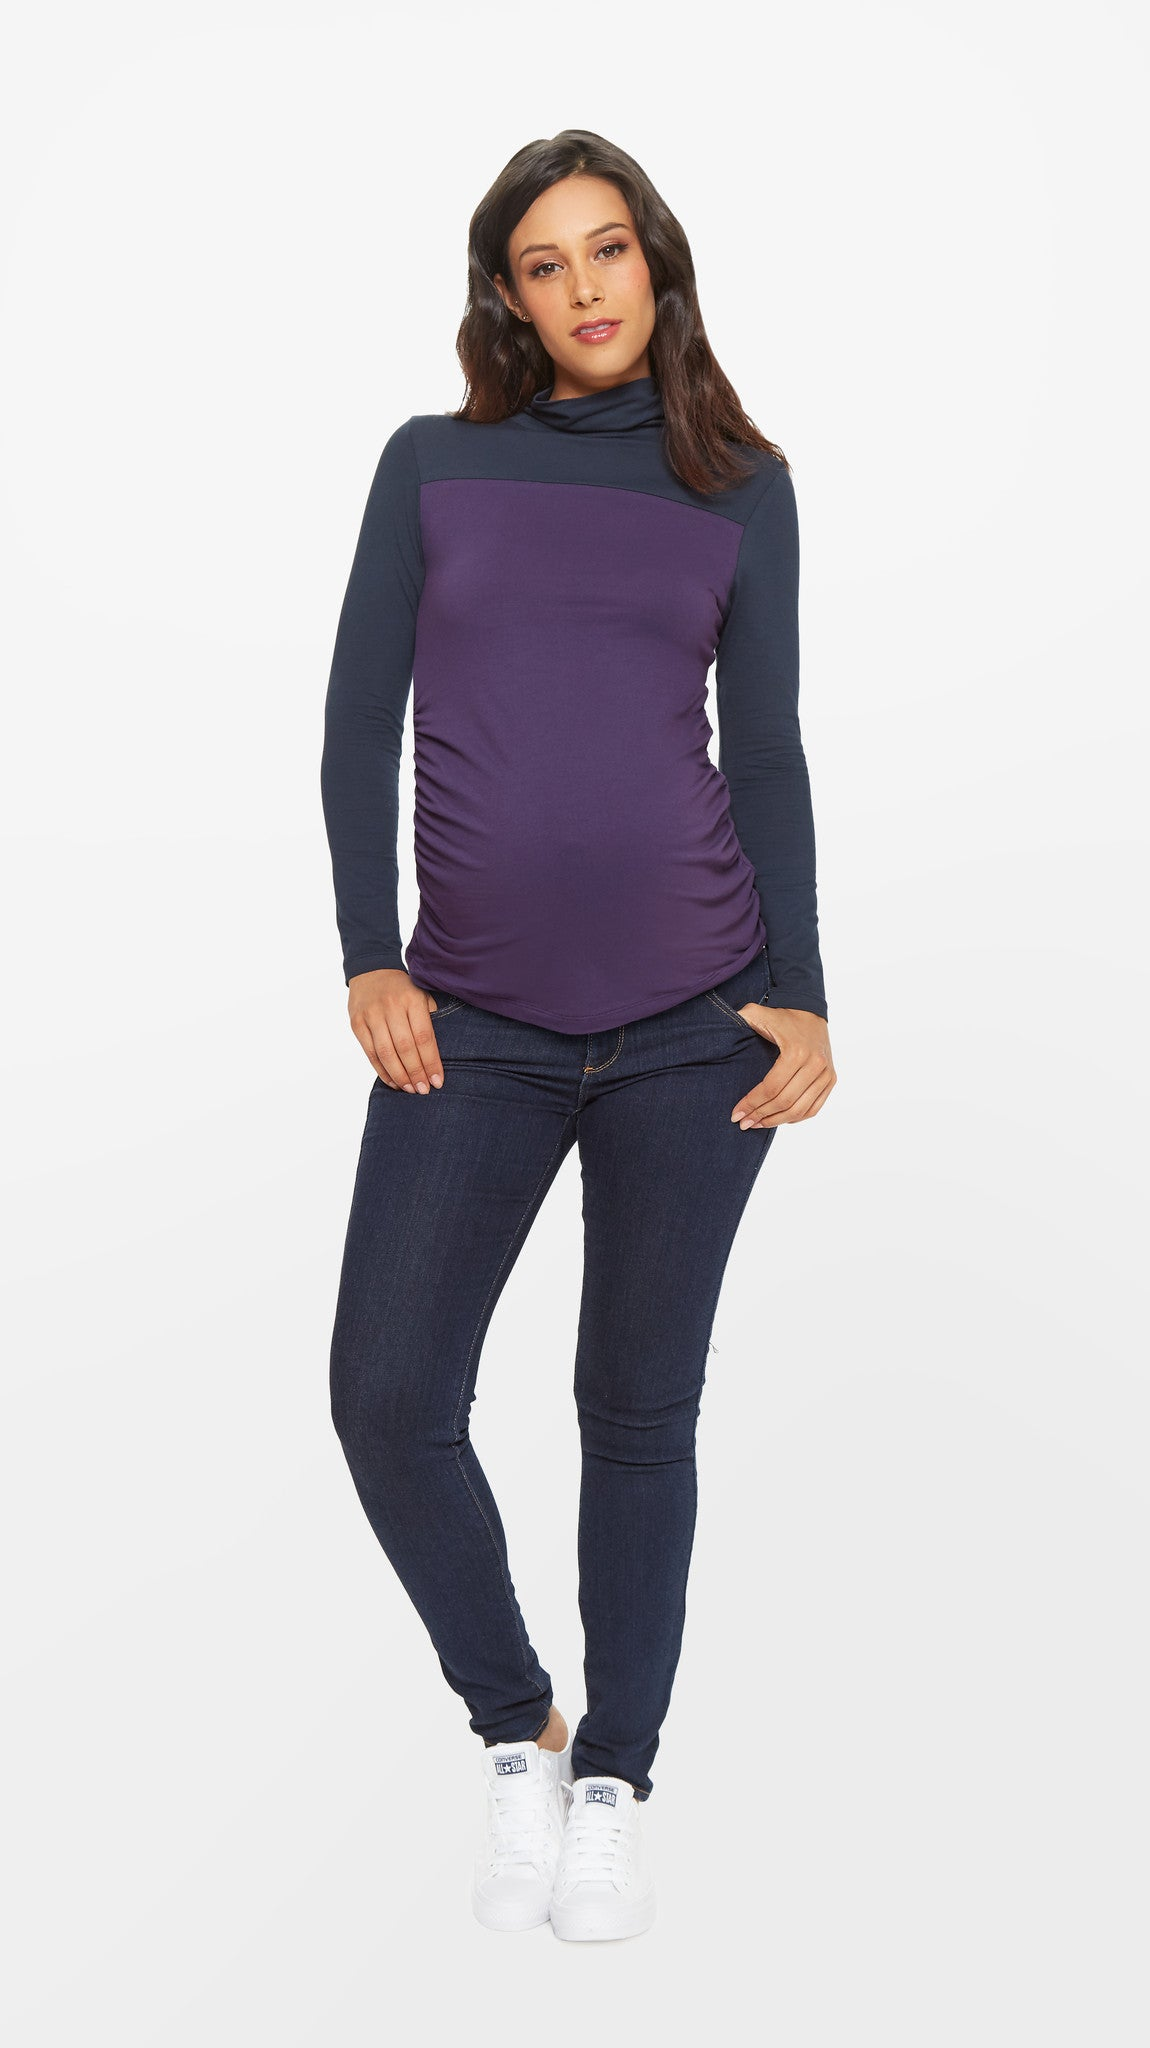 Colorblock Turtleneck Maternity Top